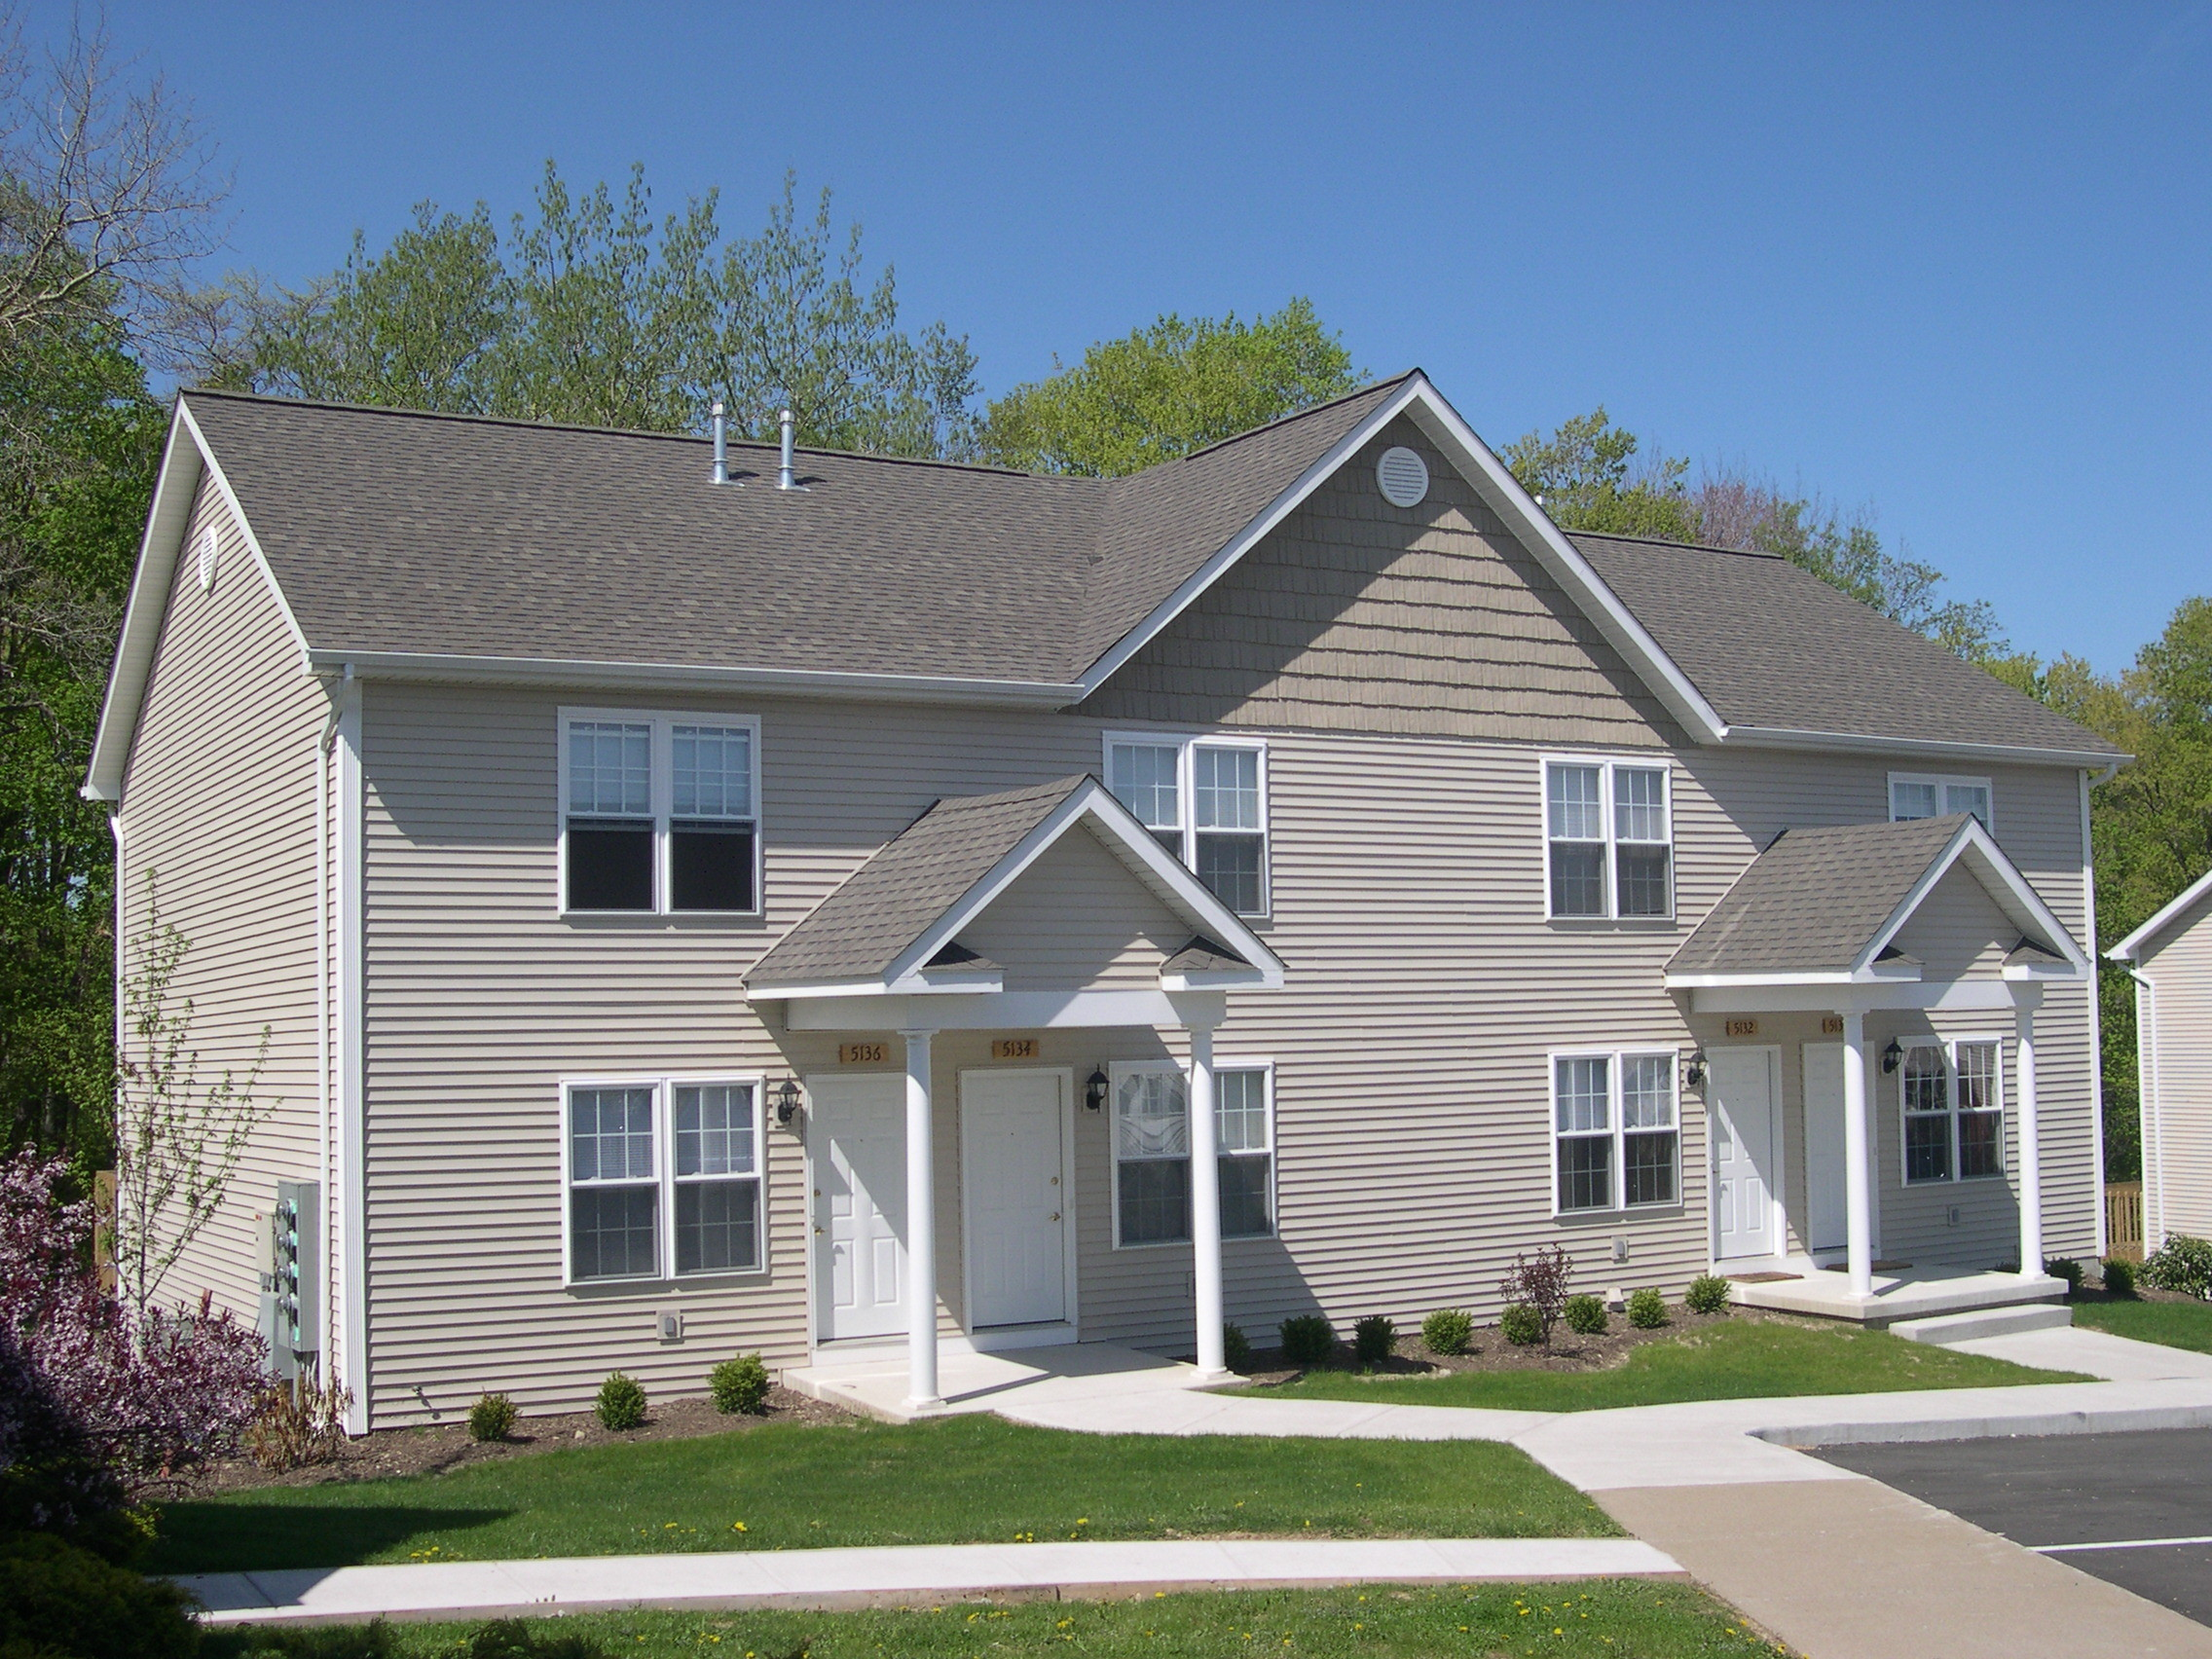 rental complex location henderson road erie pa 16509 county erie